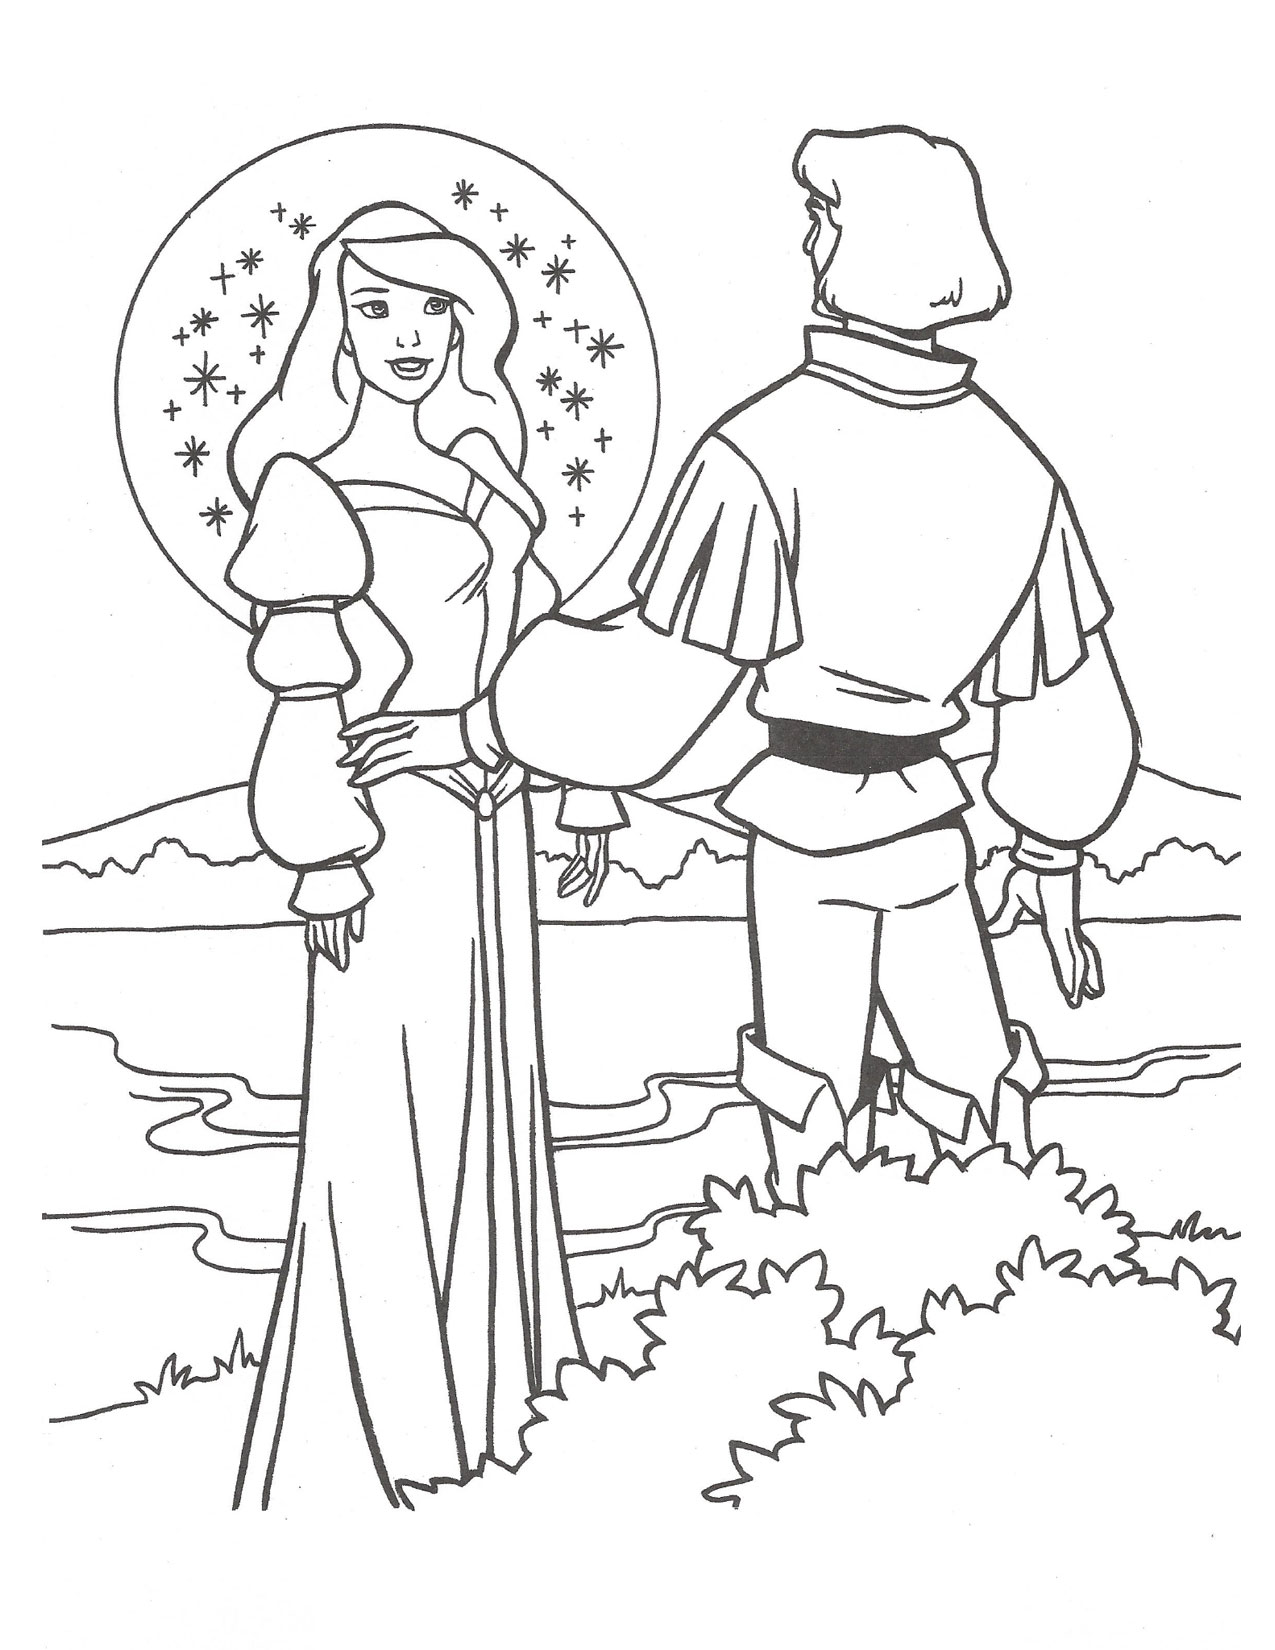 Swan Princess Odette and Prince Derek at the lake coloring page